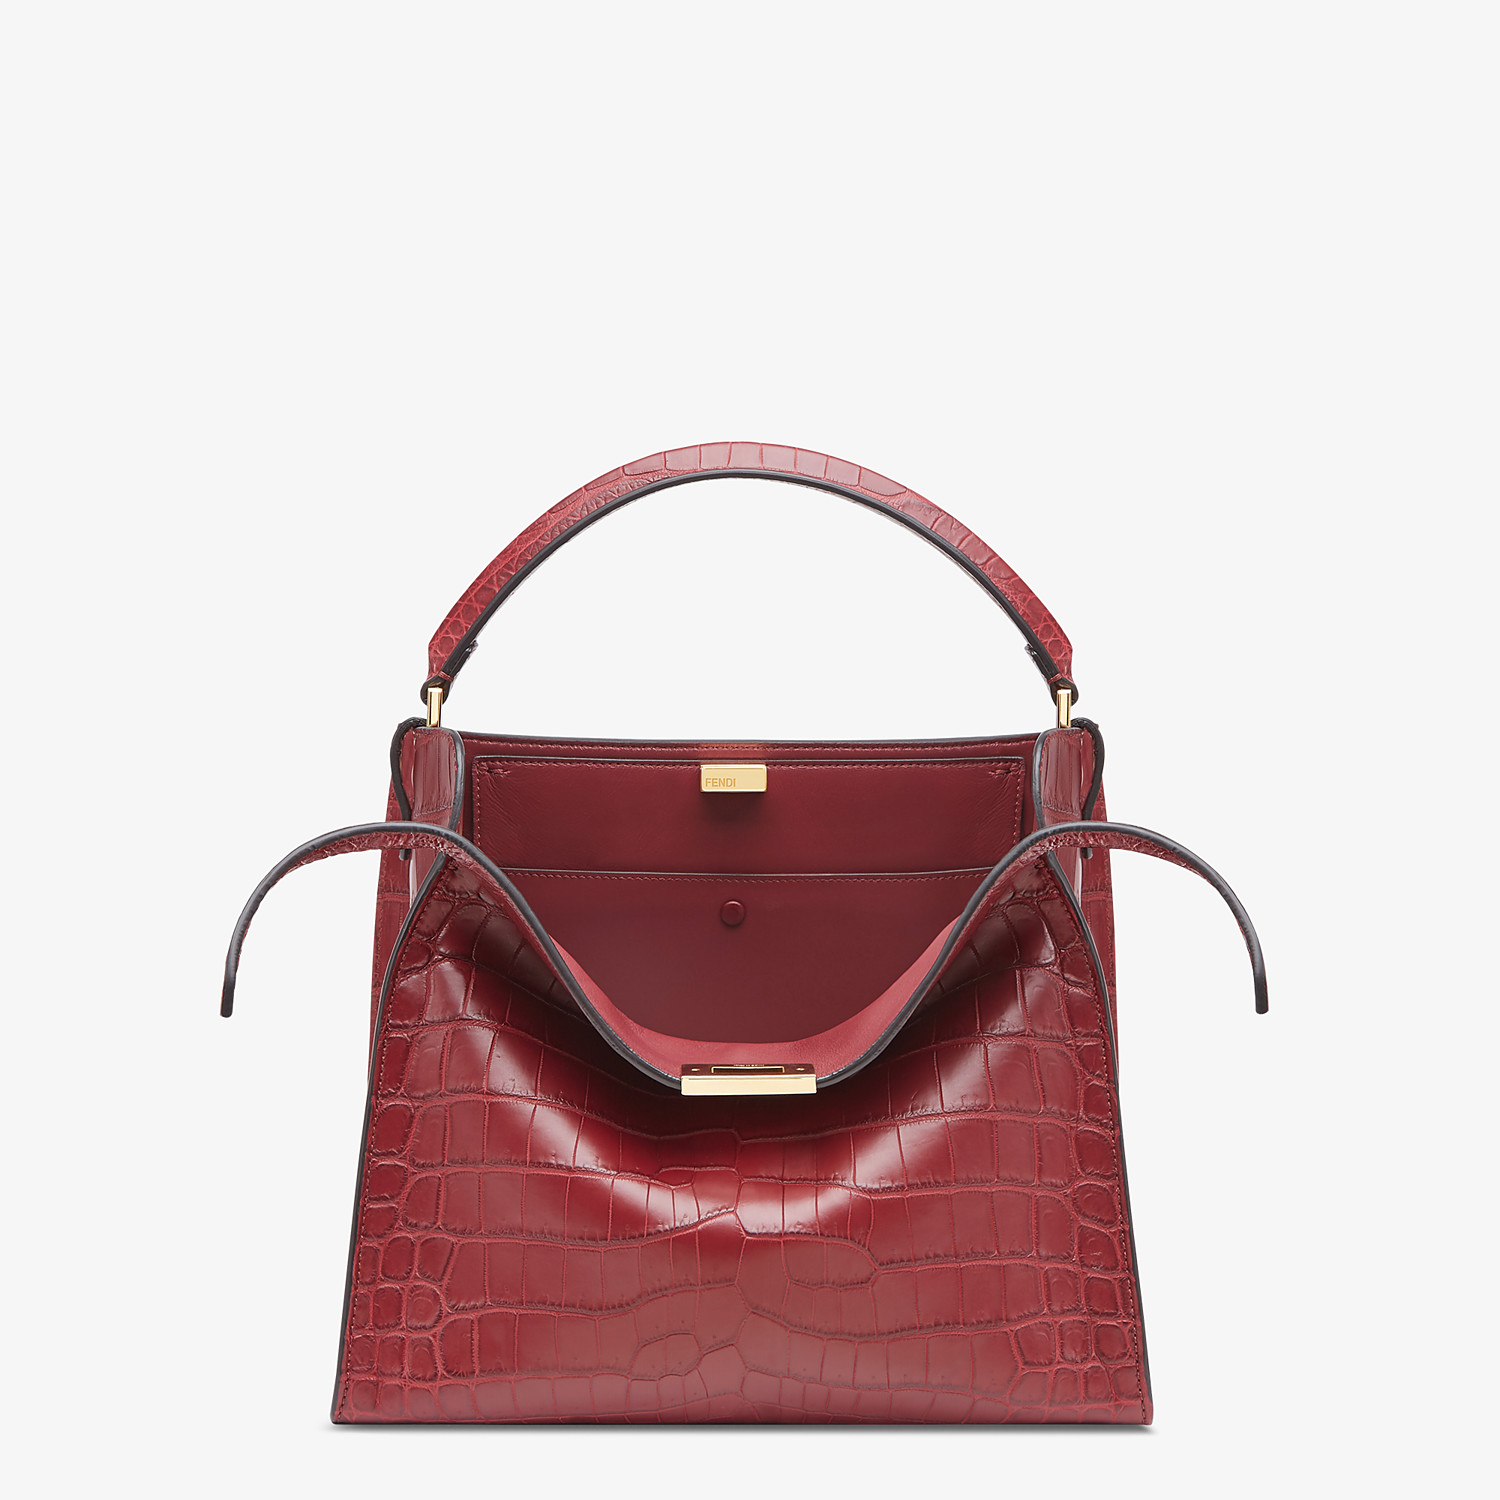 FENDI PEEKABOO X-LITE MEDIUM - Burgundy crocodile leather bag - view 1 detail